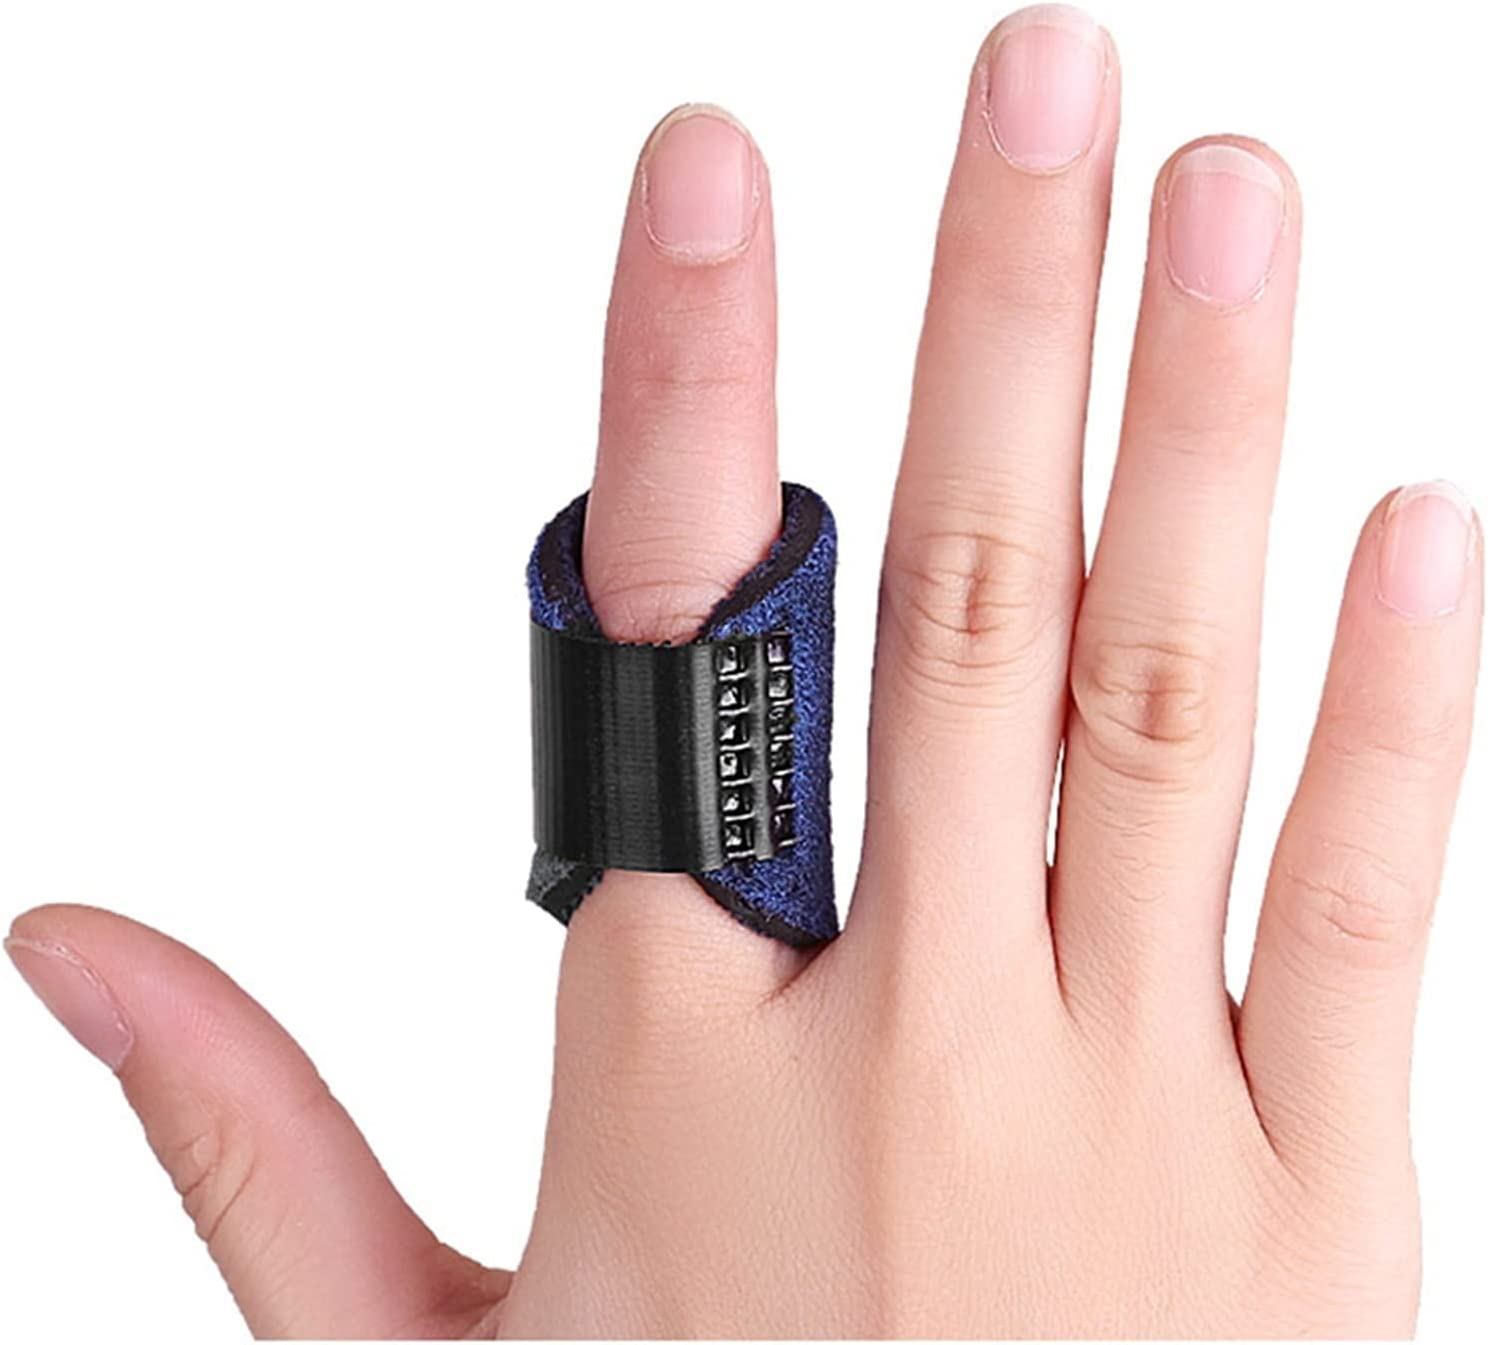 LIZHE Adjustable Finger splints Challenge the lowest price of Japan ☆ Brace Basketball Seattle Mall Protect